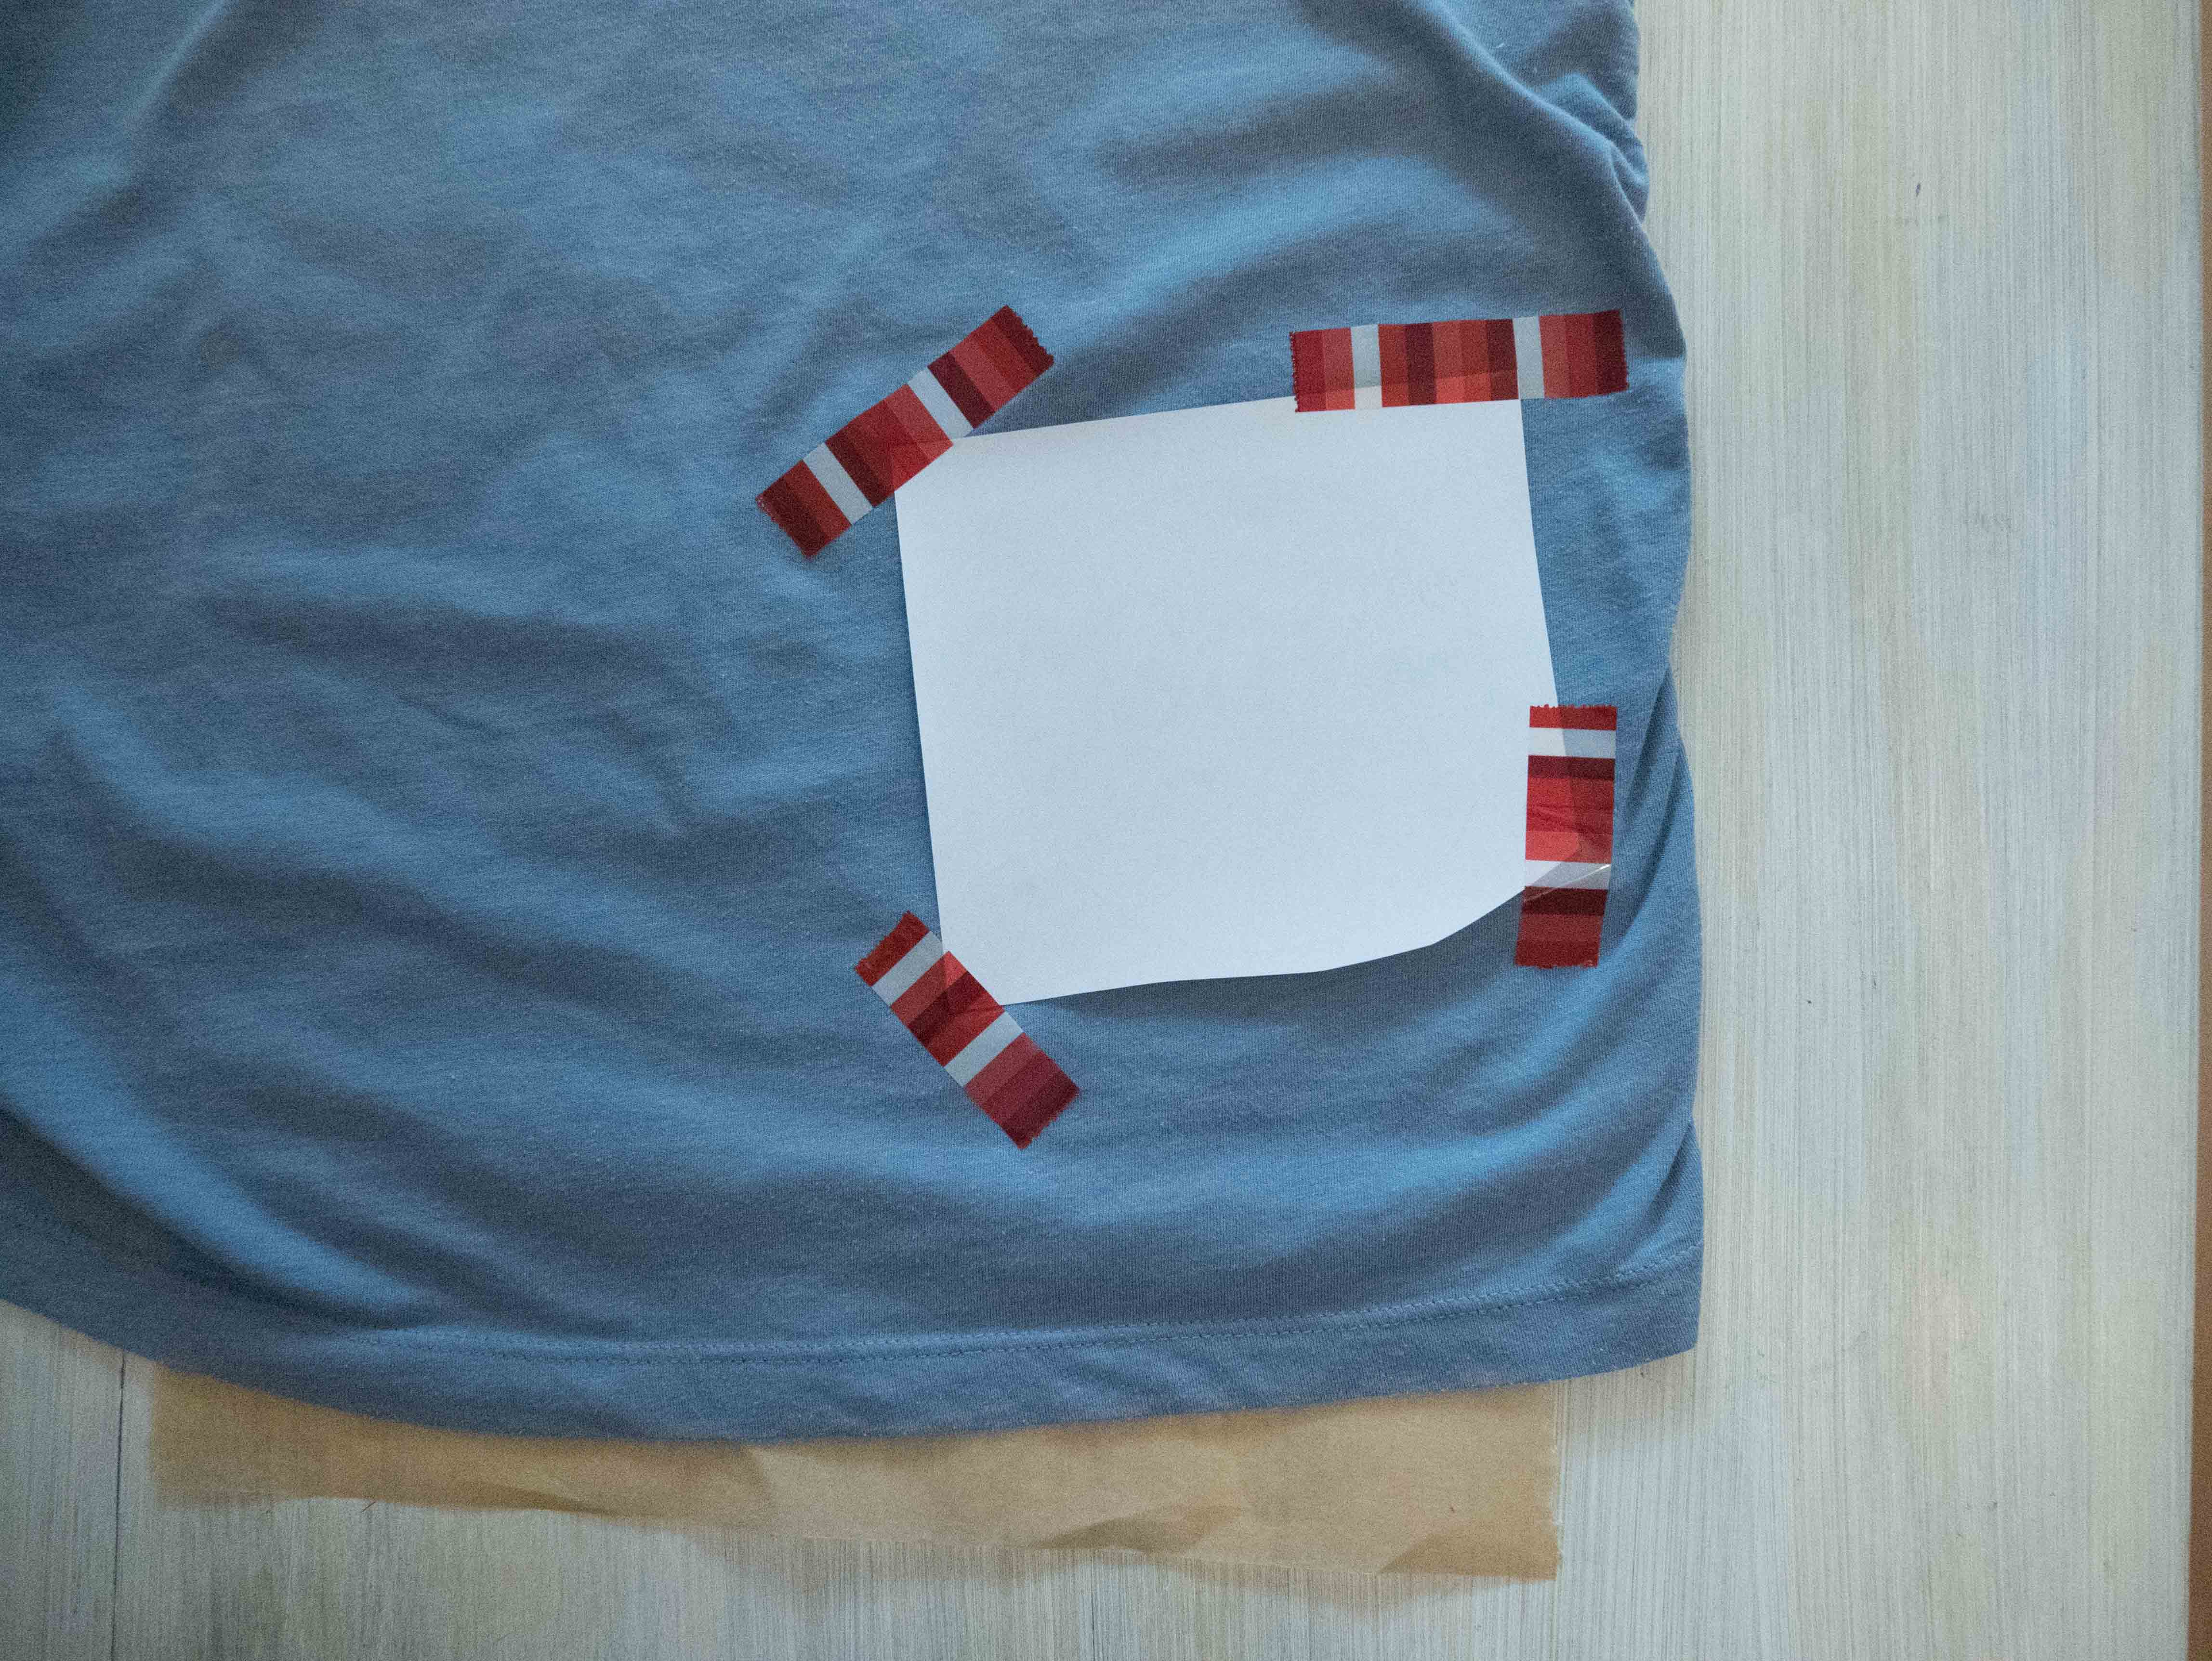 Picture of Transferring the Print on Your Shirt